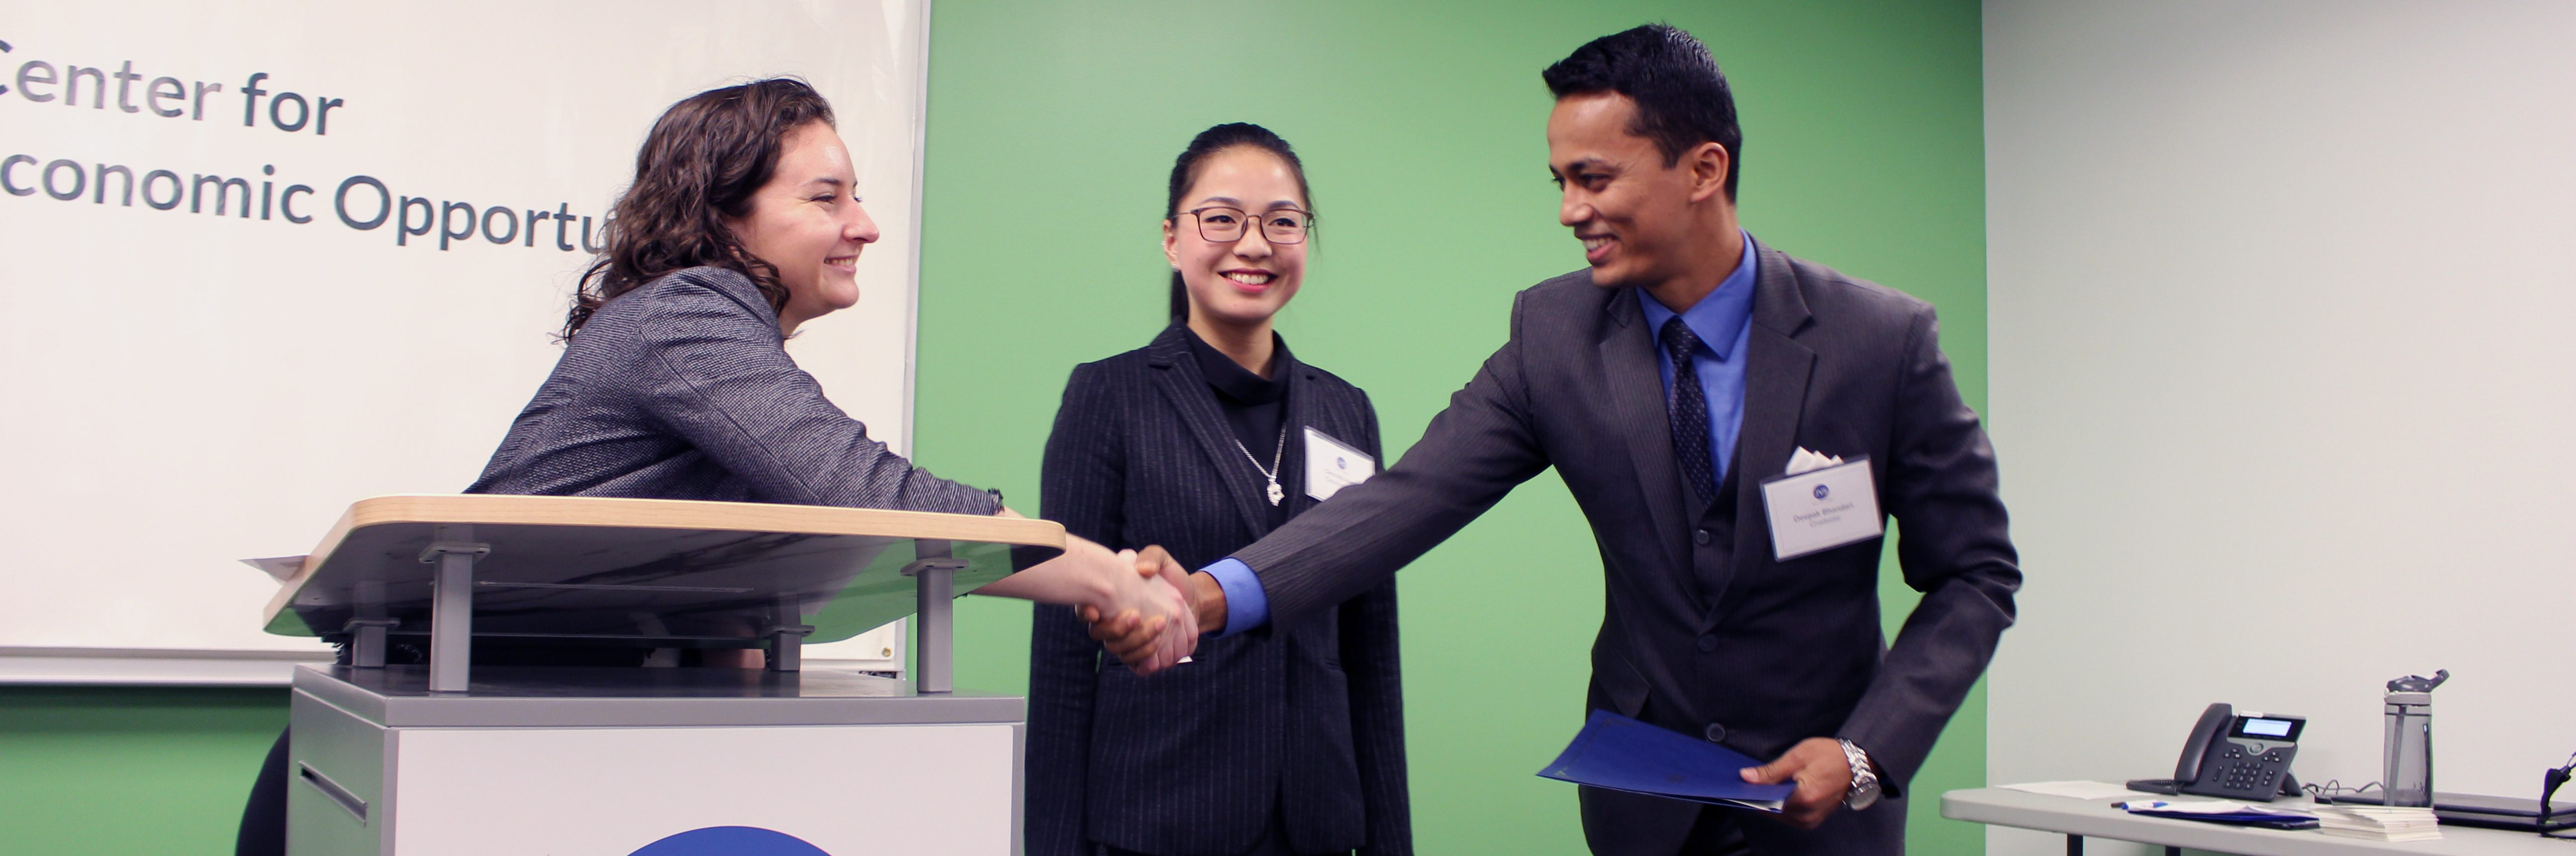 JVS student shaking hands with a career coach